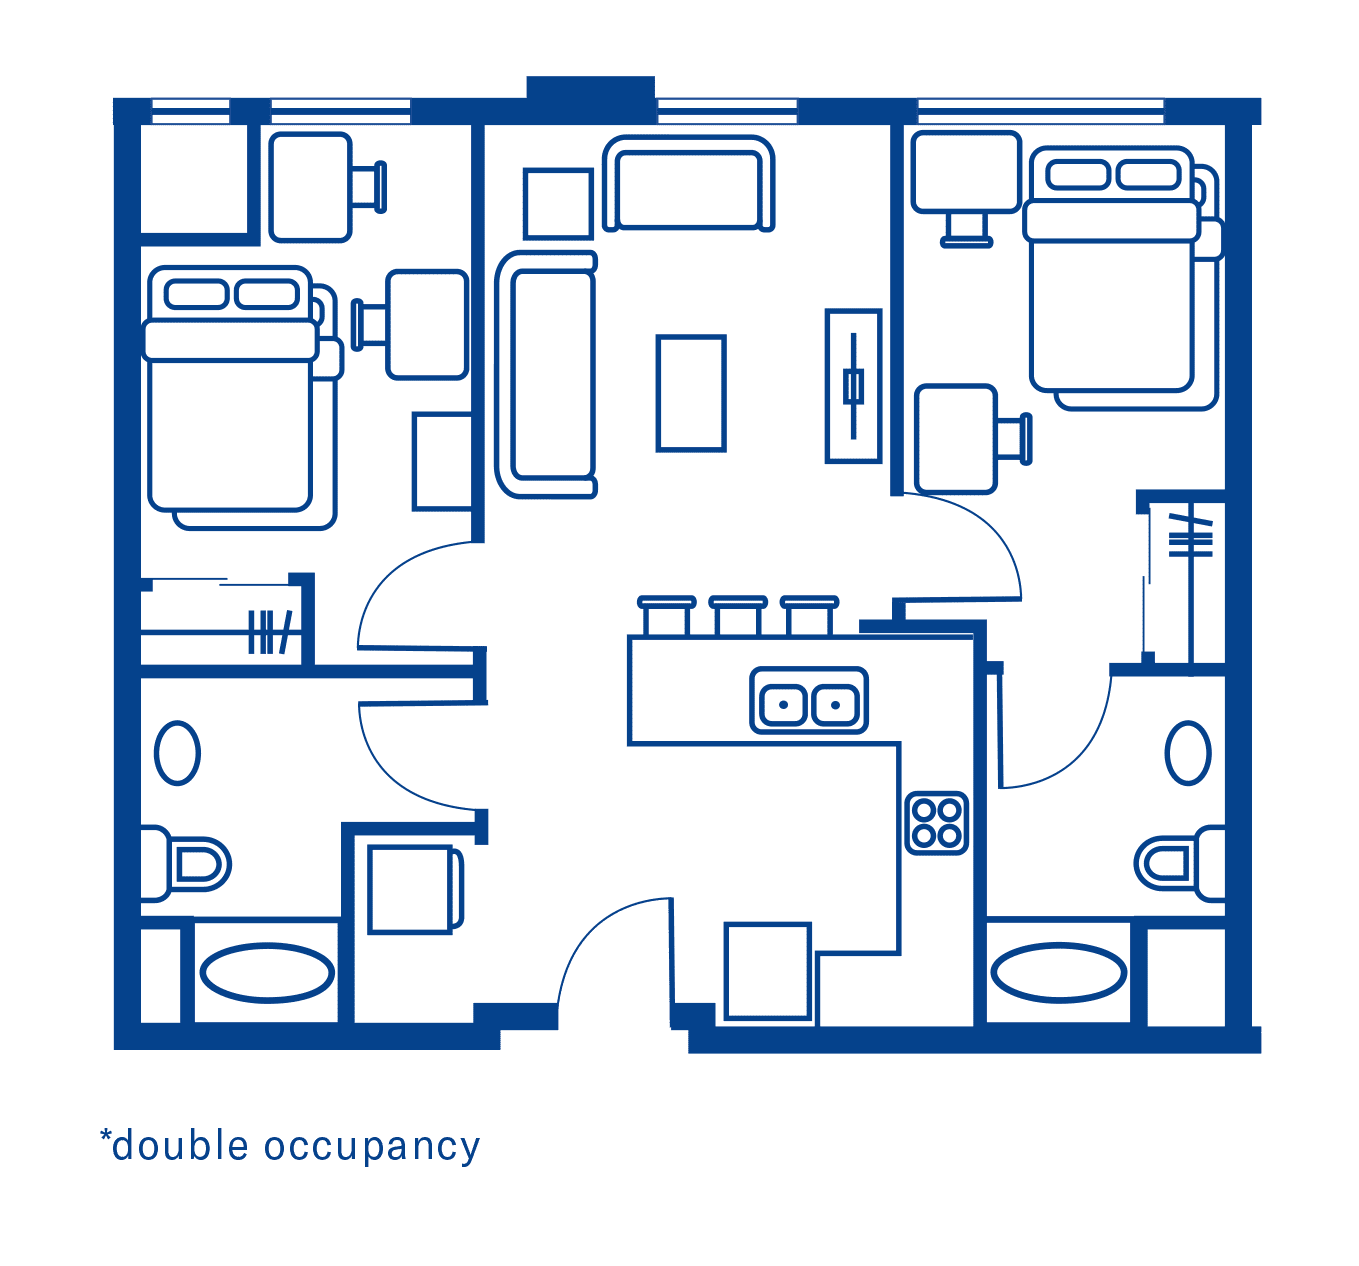 2 Bedroom Floorplan 4